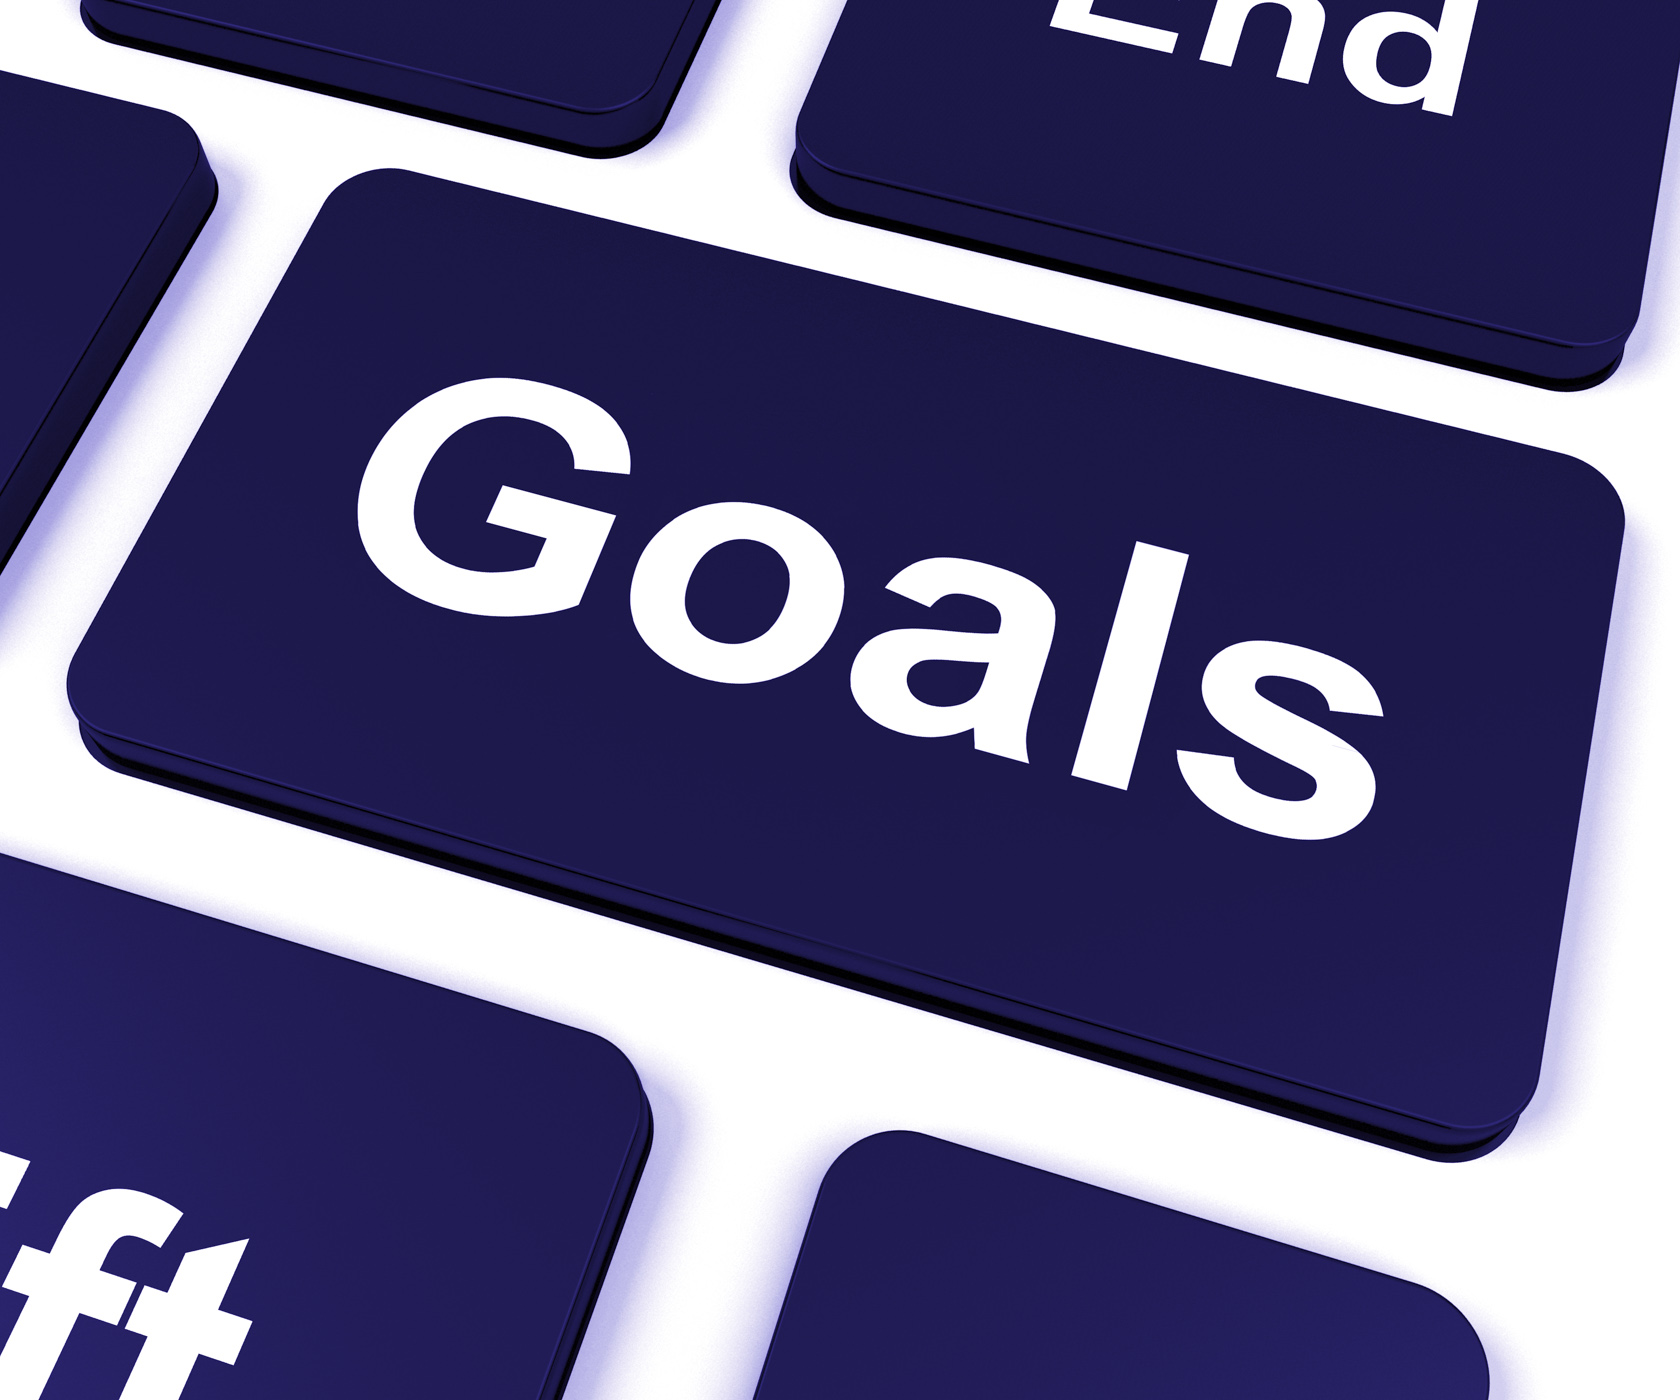 Goals Key Shows Aims Objectives Or Aspirations, Aims, Keyboard, Targets, Targeting, HQ Photo